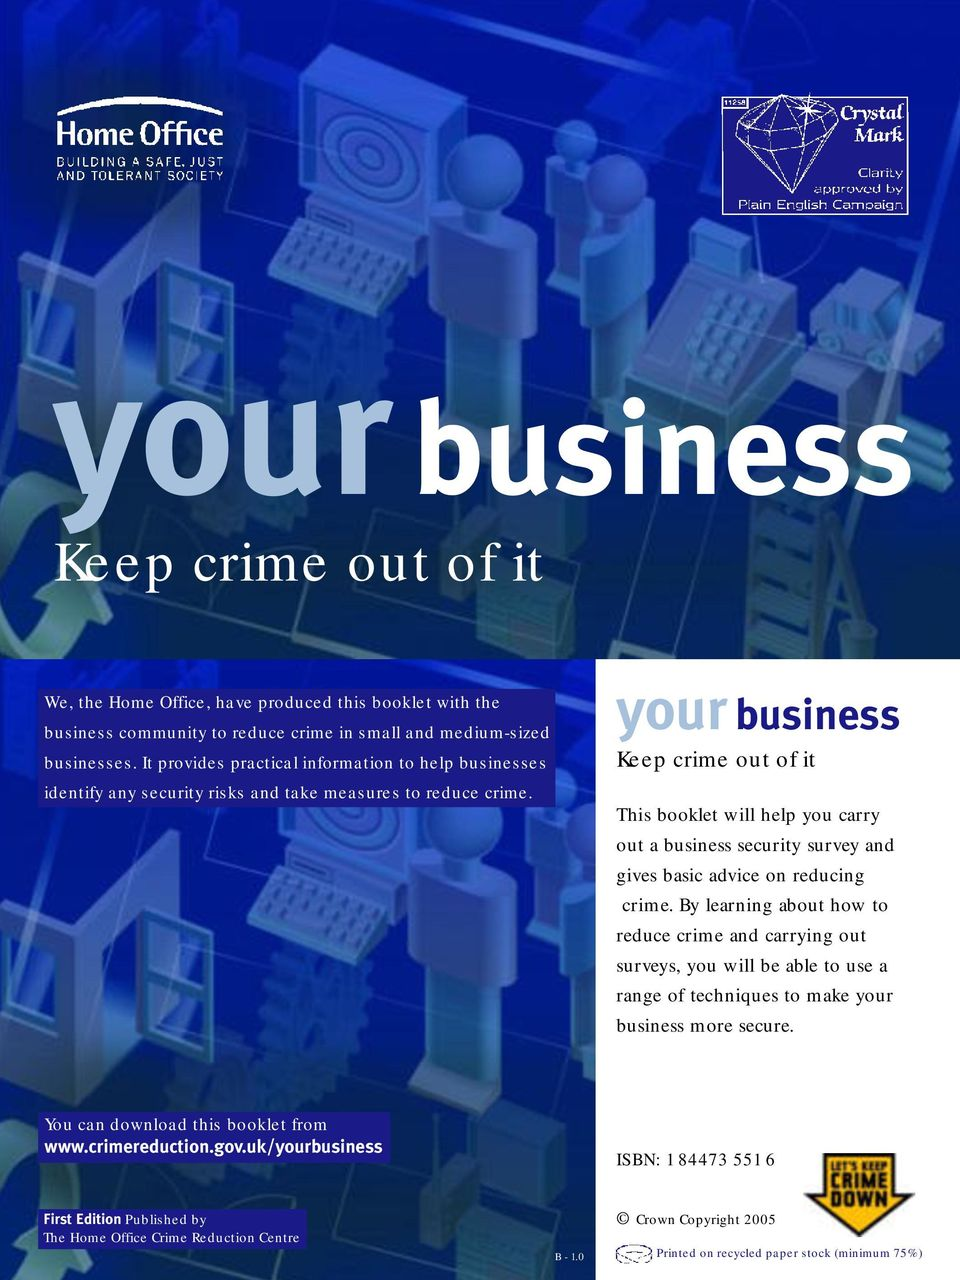 your business Keep crime out of it This booklet will help you carry out a business security survey and gives basic advice on reducing crime.